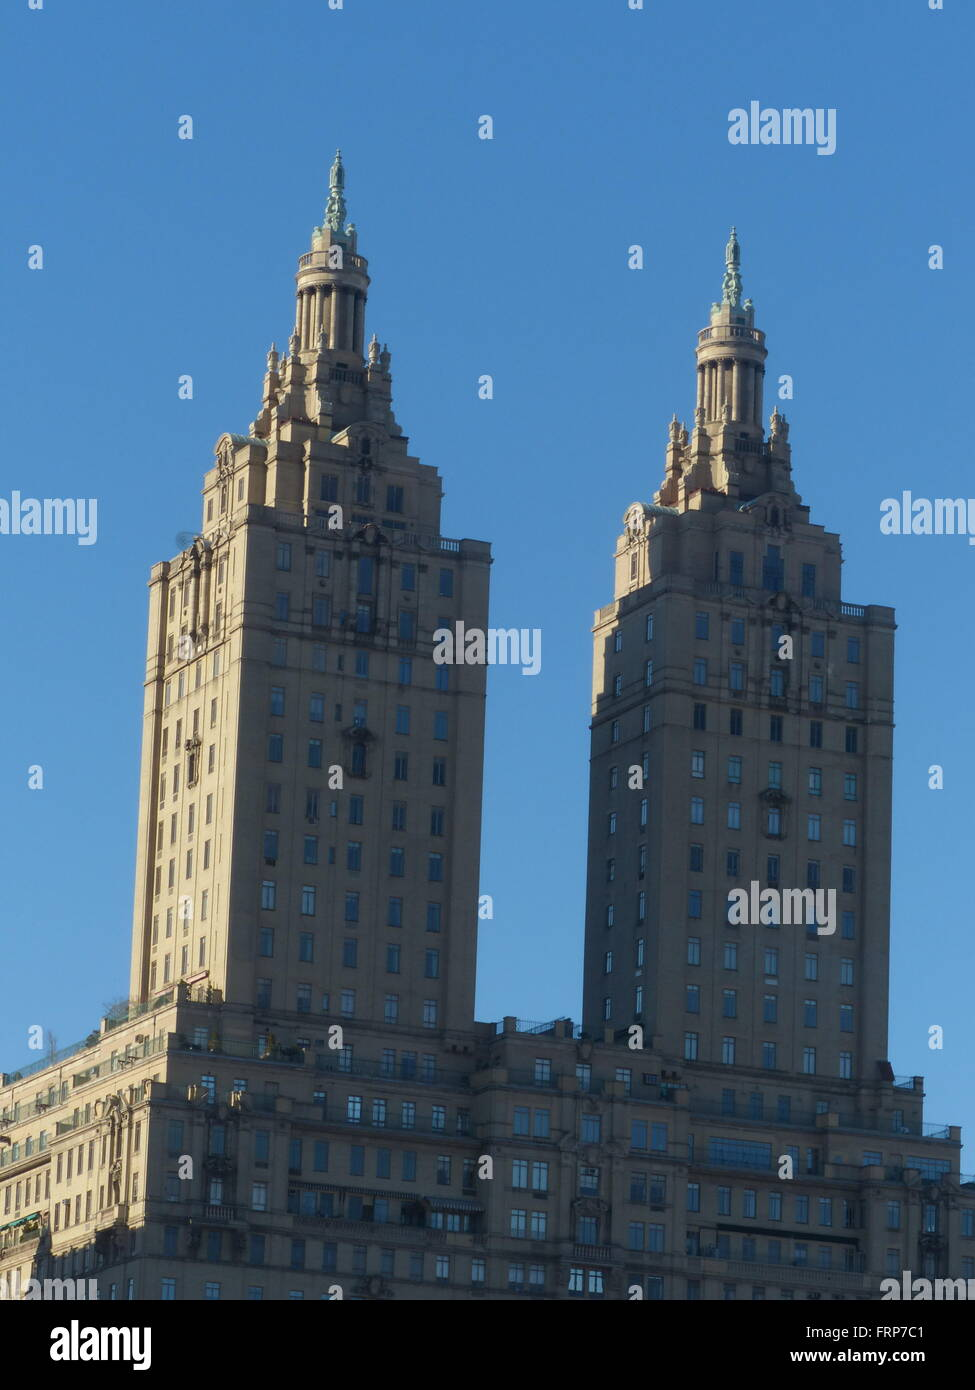 The San Remo Building built in Art Deco style on Central Park West in Manhattan - Stock Image